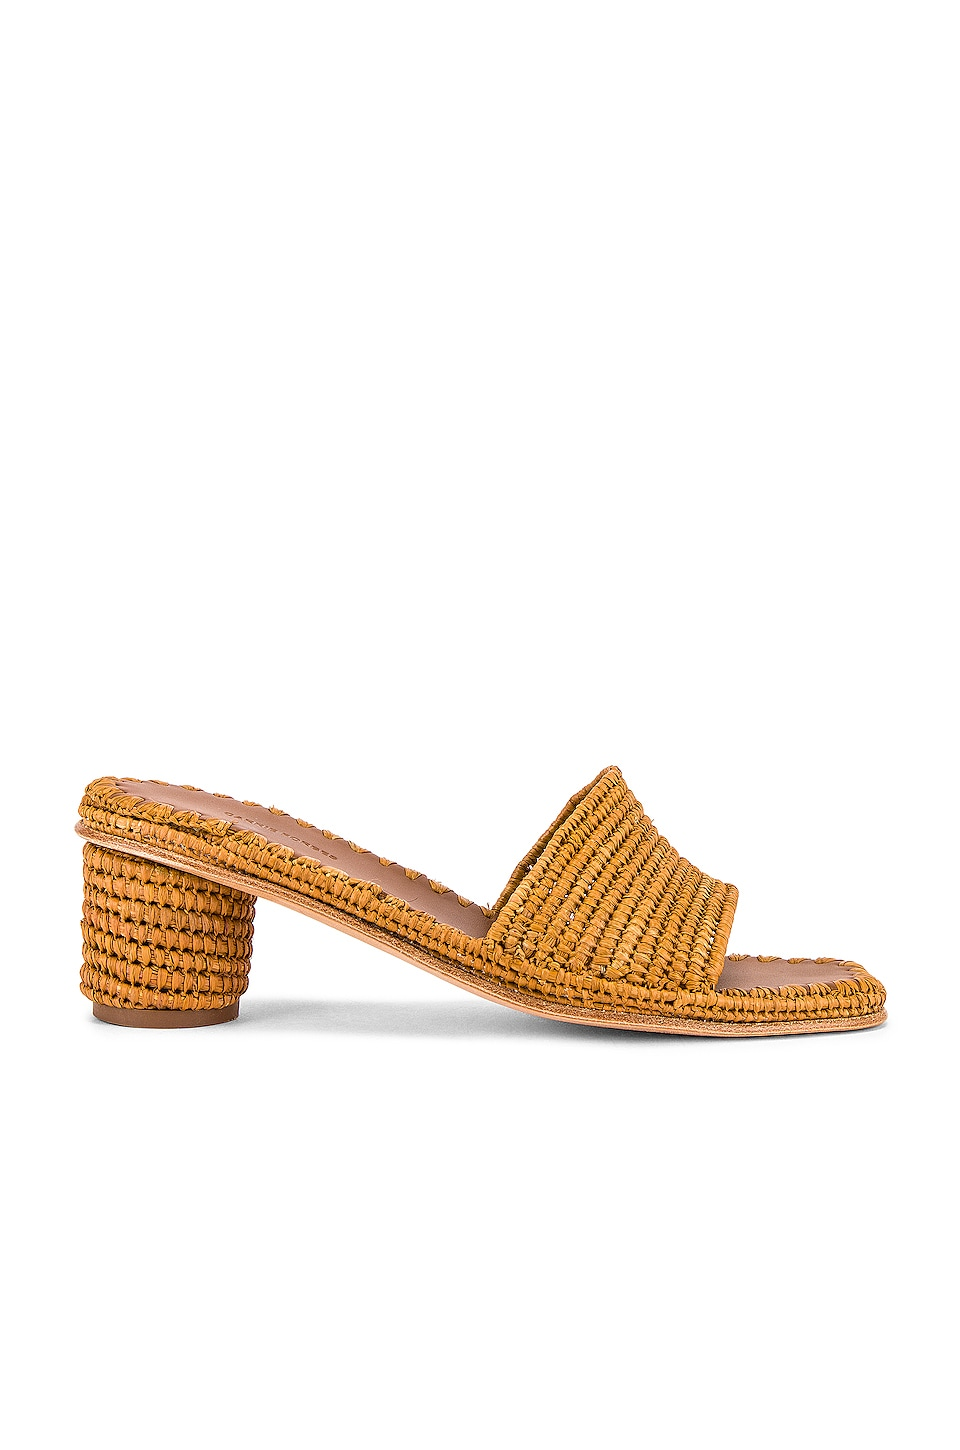 Carrie Forbes Bou Sandal in Cognac